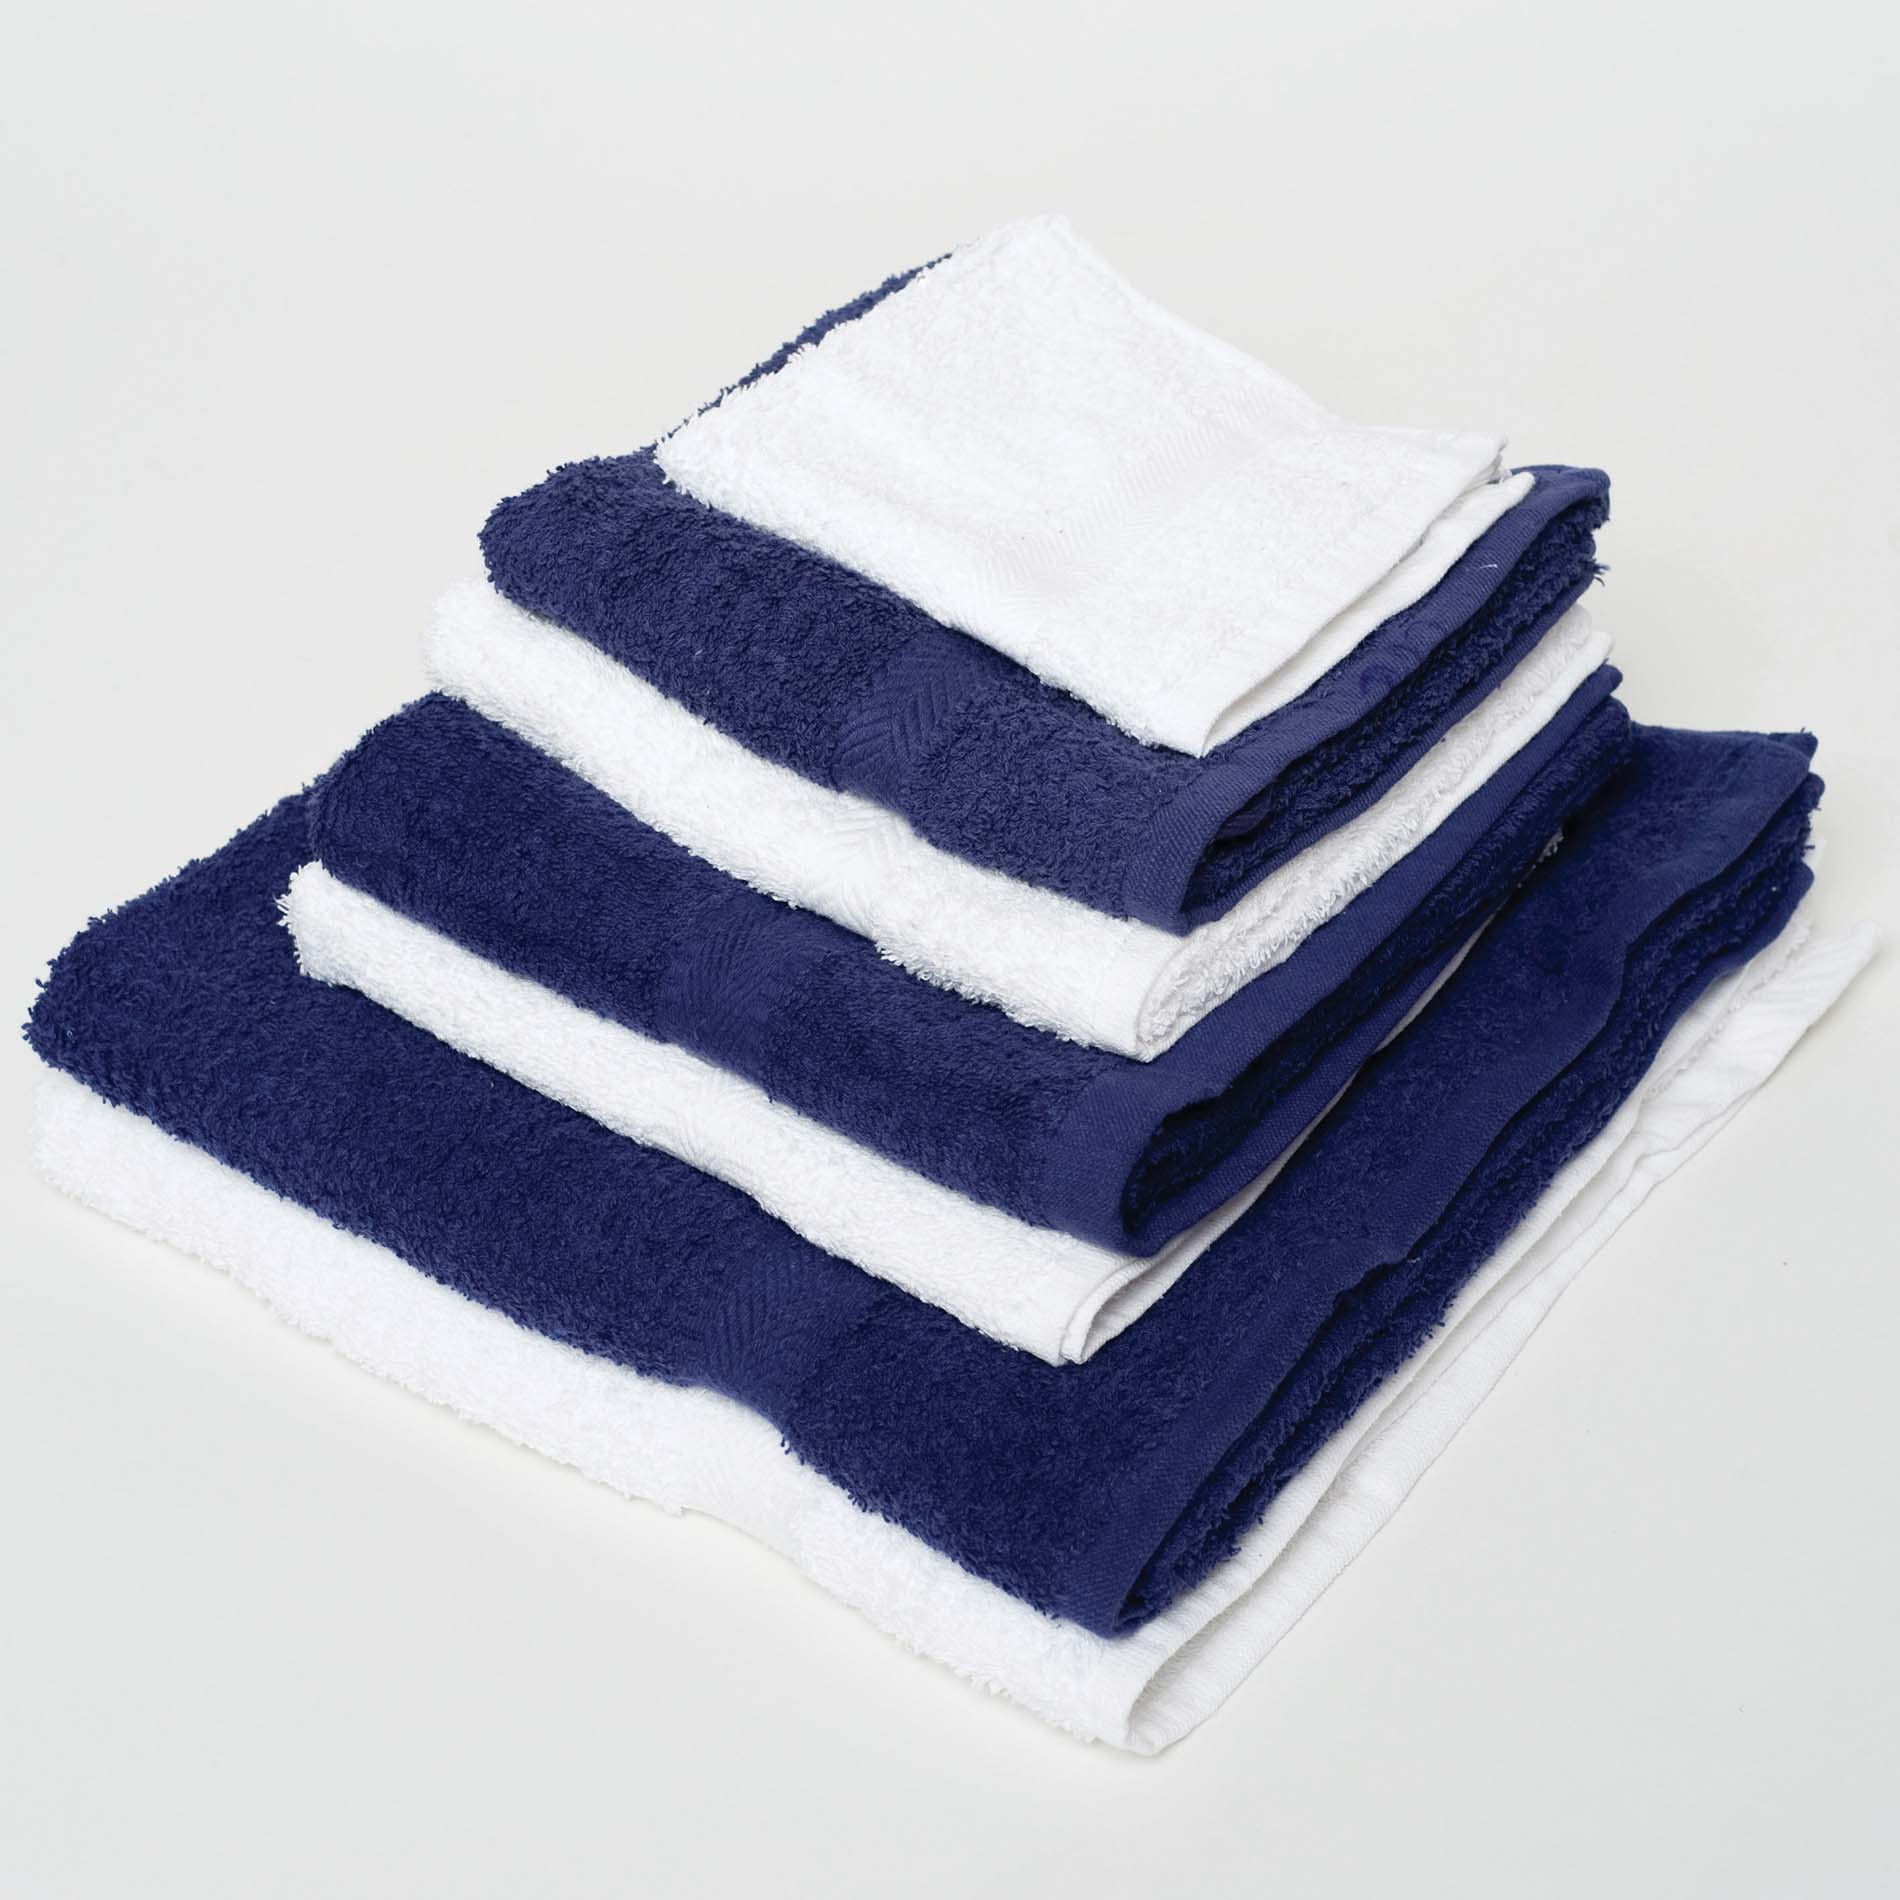 Towel City SERVIETTE DE SPORT